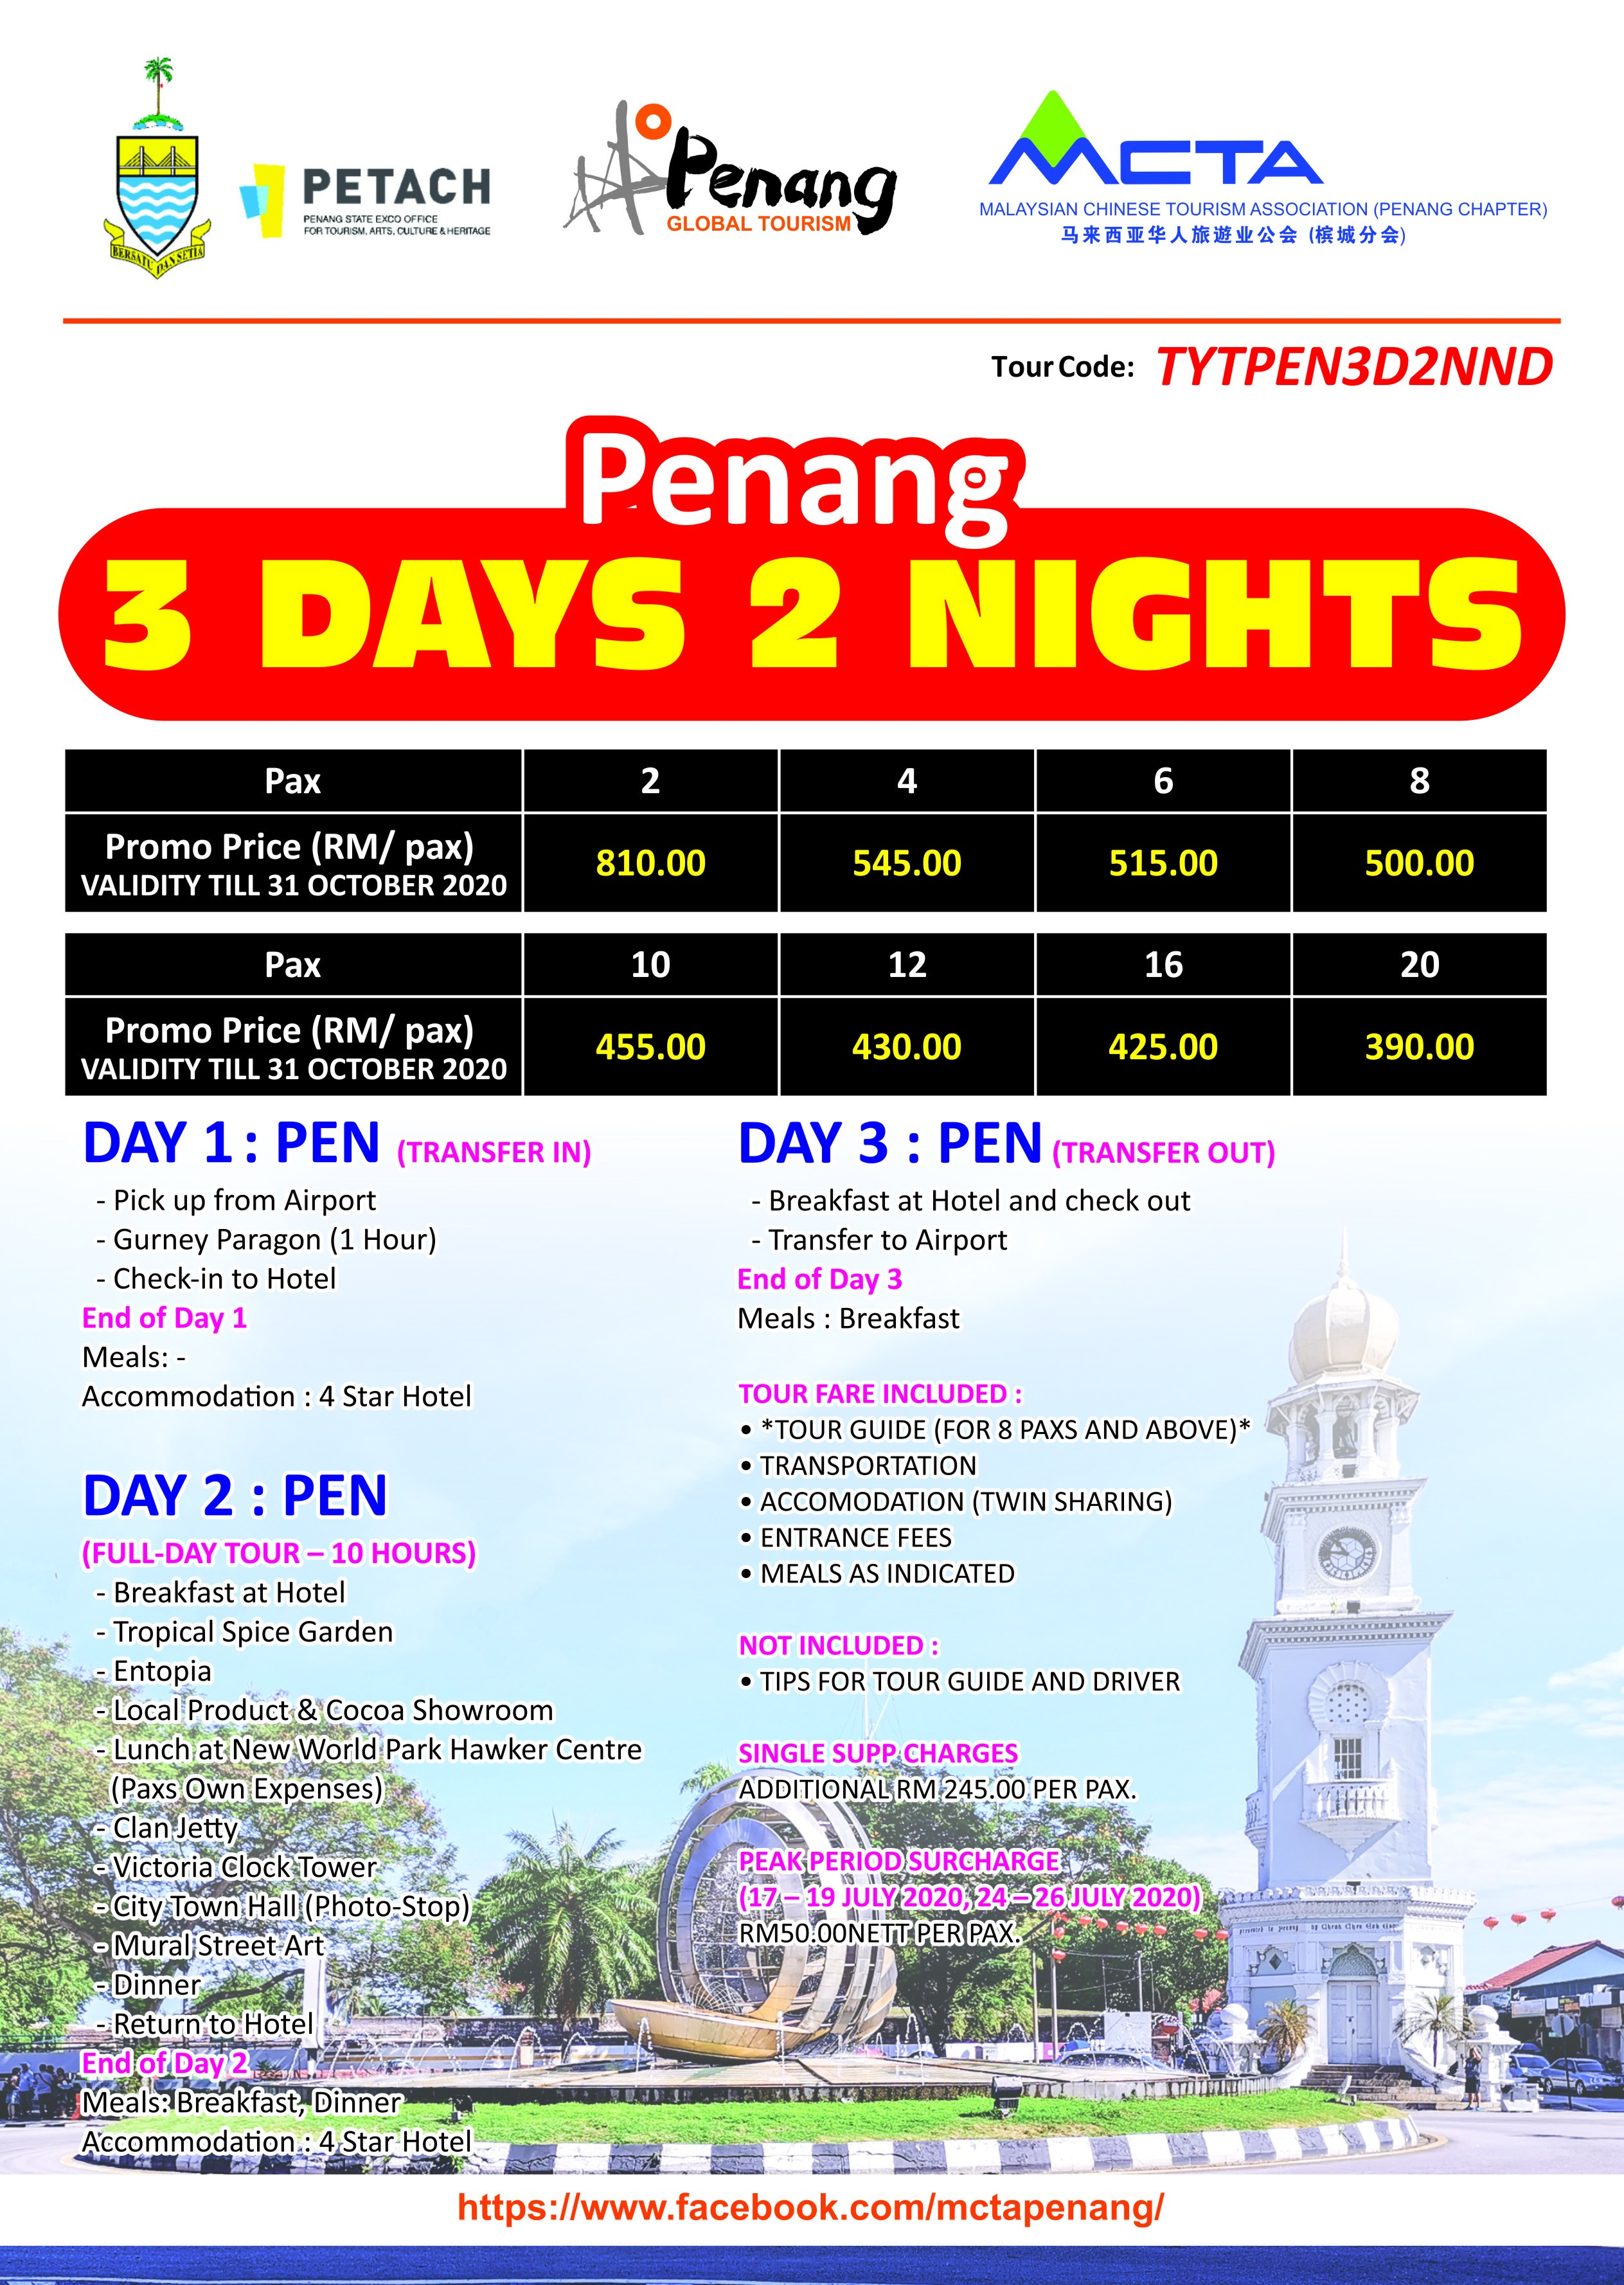 Penang - 3 Days 2 Nights